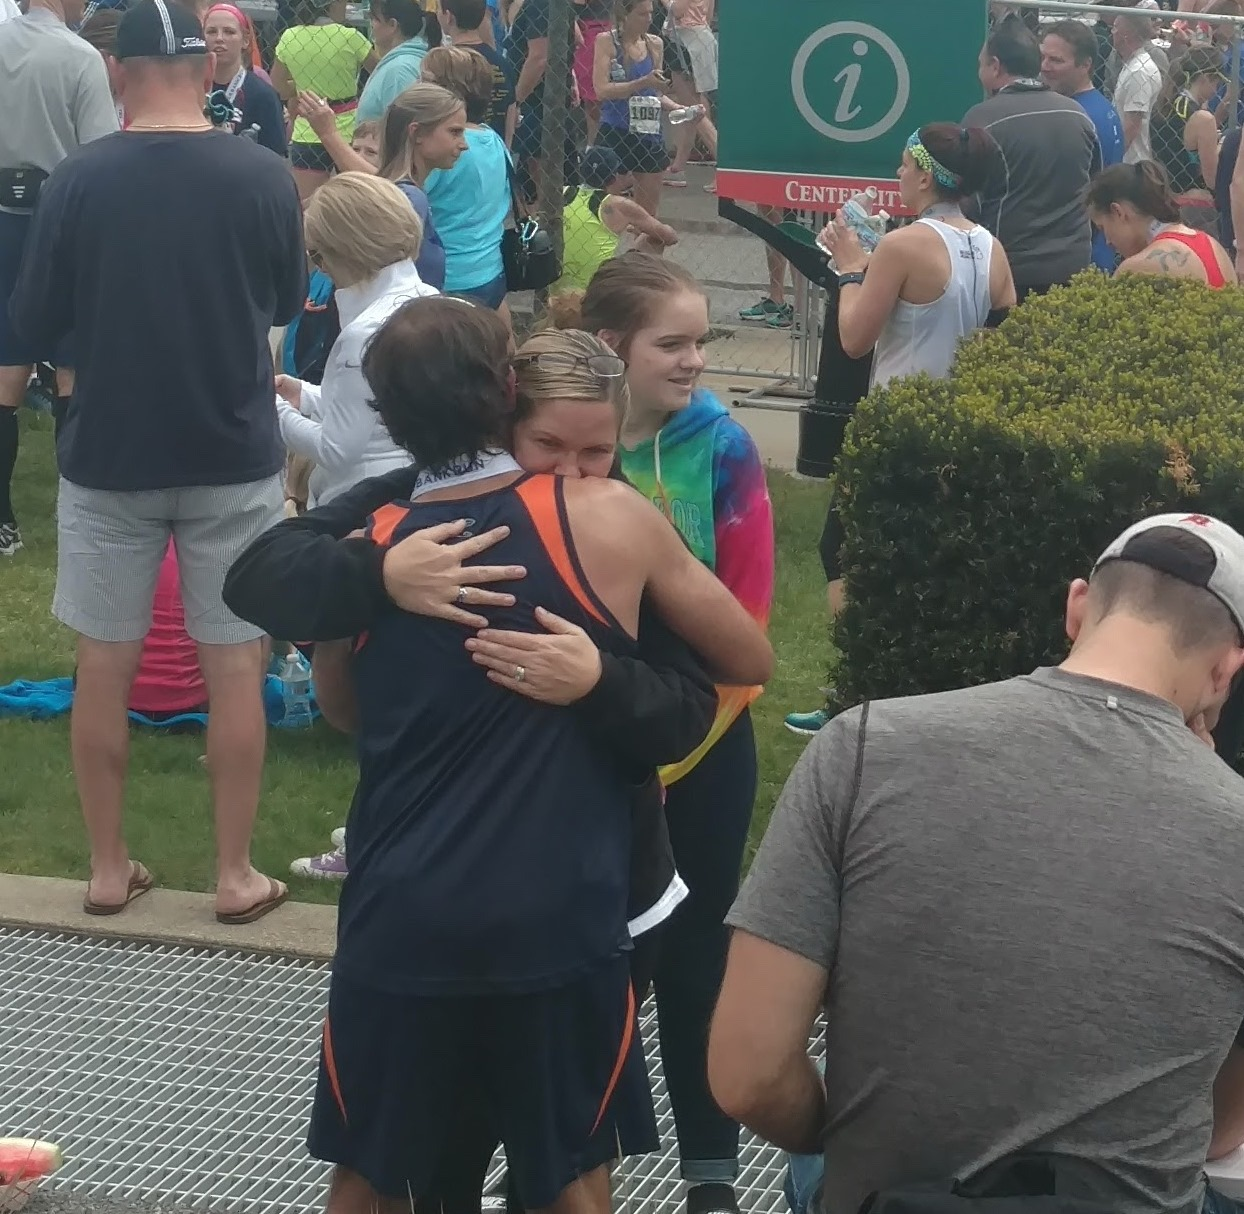 Runners hugging at the finish of the 5/3 River Bank Run 2017